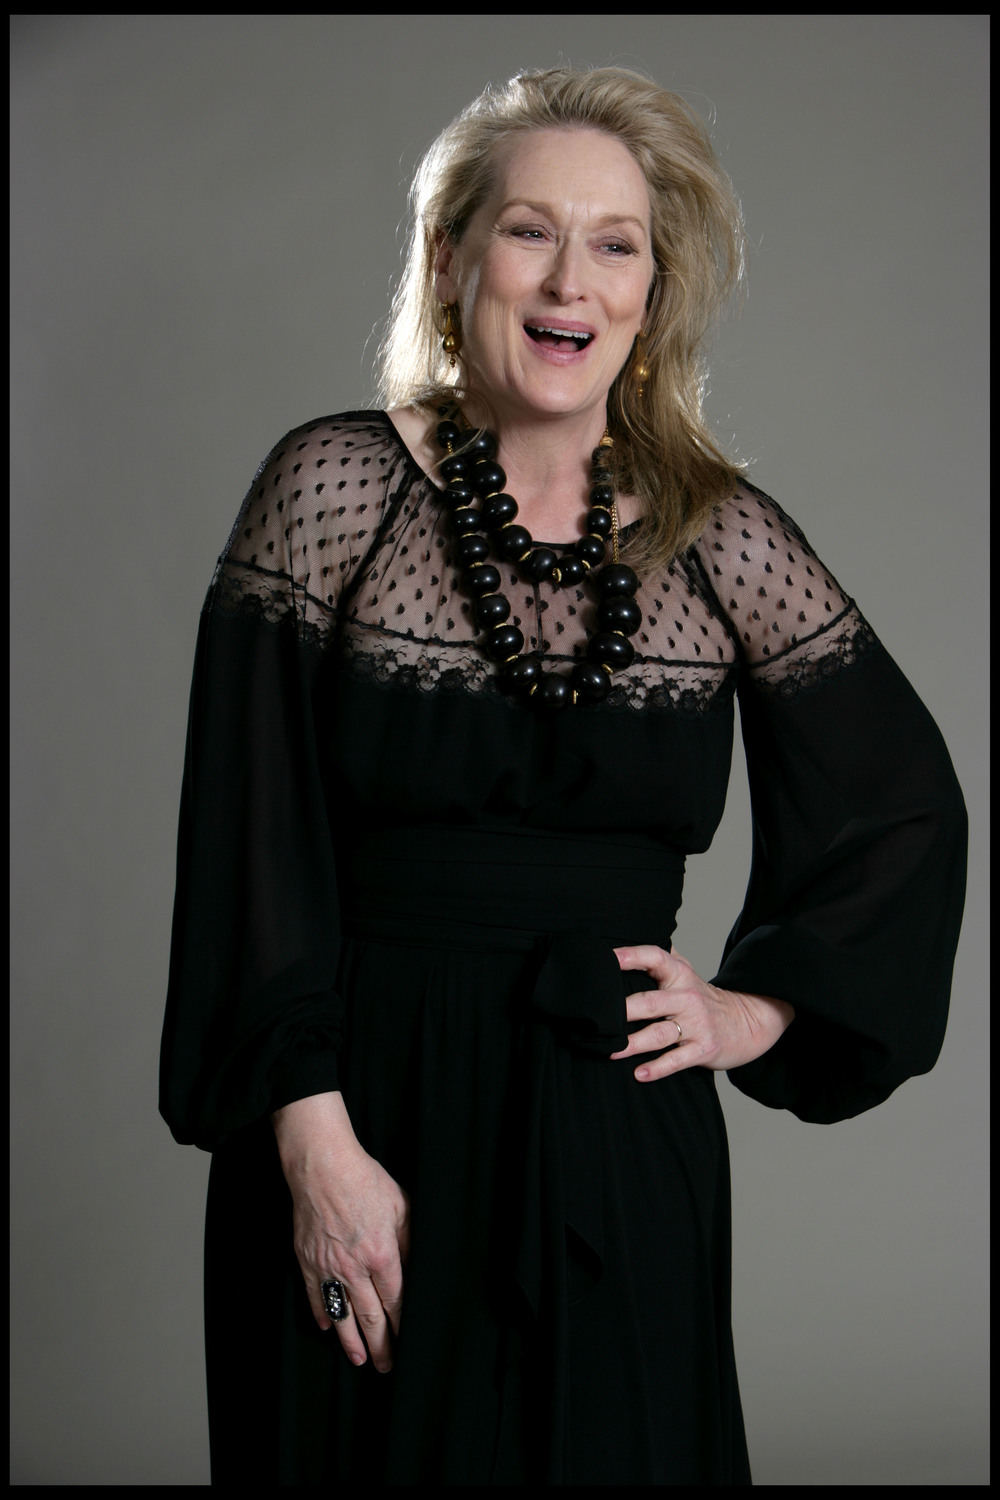 Meryll Streep, actress